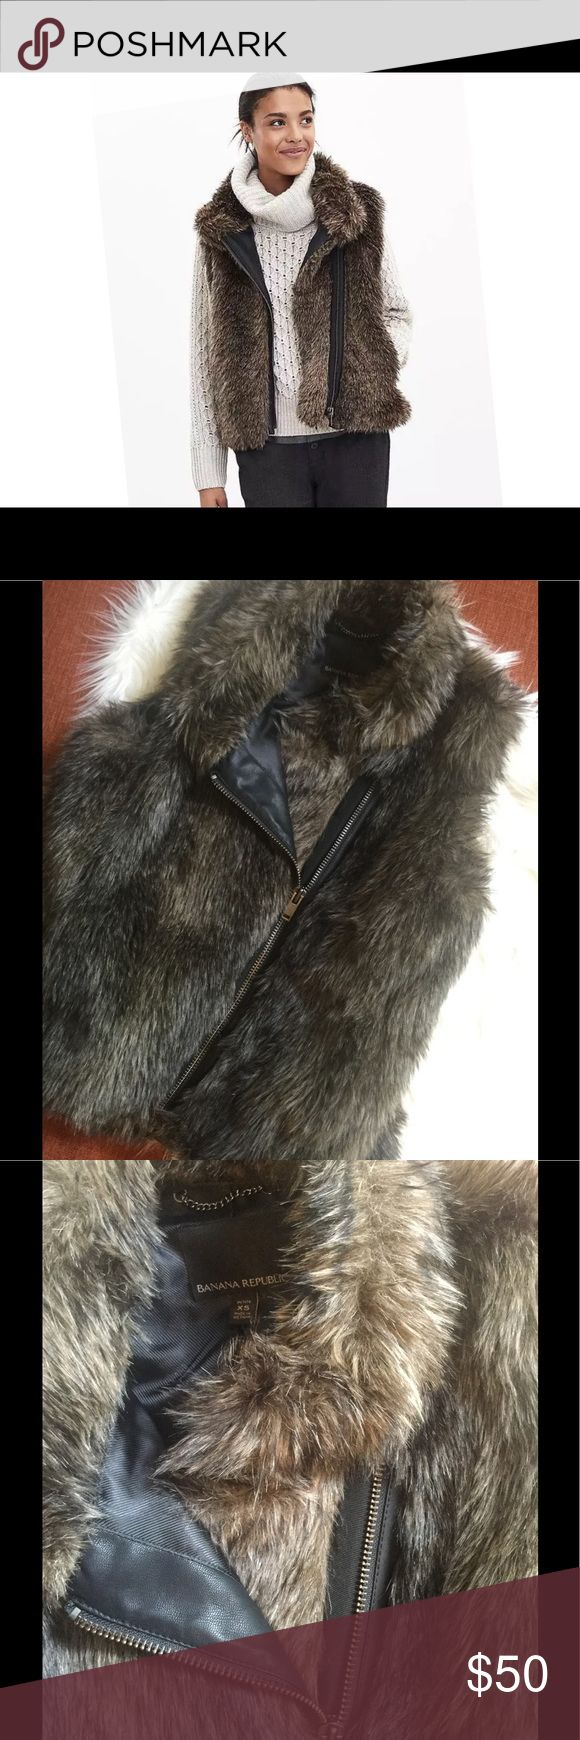 """Banana Republic Faux Fur Vest XS Luxe faux fur gives an opulent touch to our on-trend vest.  Excellent condition. Length 21"""" waist 16.5"""" lying flat.  Size: XS Color: Brown combo Cross-front standing collar. Sleeveless. Faux-leather trim full-zip closure. Front pockets. Fully lined. Hits at the hip. 85% Acrylic, 15% Polyester. Dry clean. Imported. Brand new with tag. Retail price: $138+tax. Banana Republic Jackets & Coats Vests"""